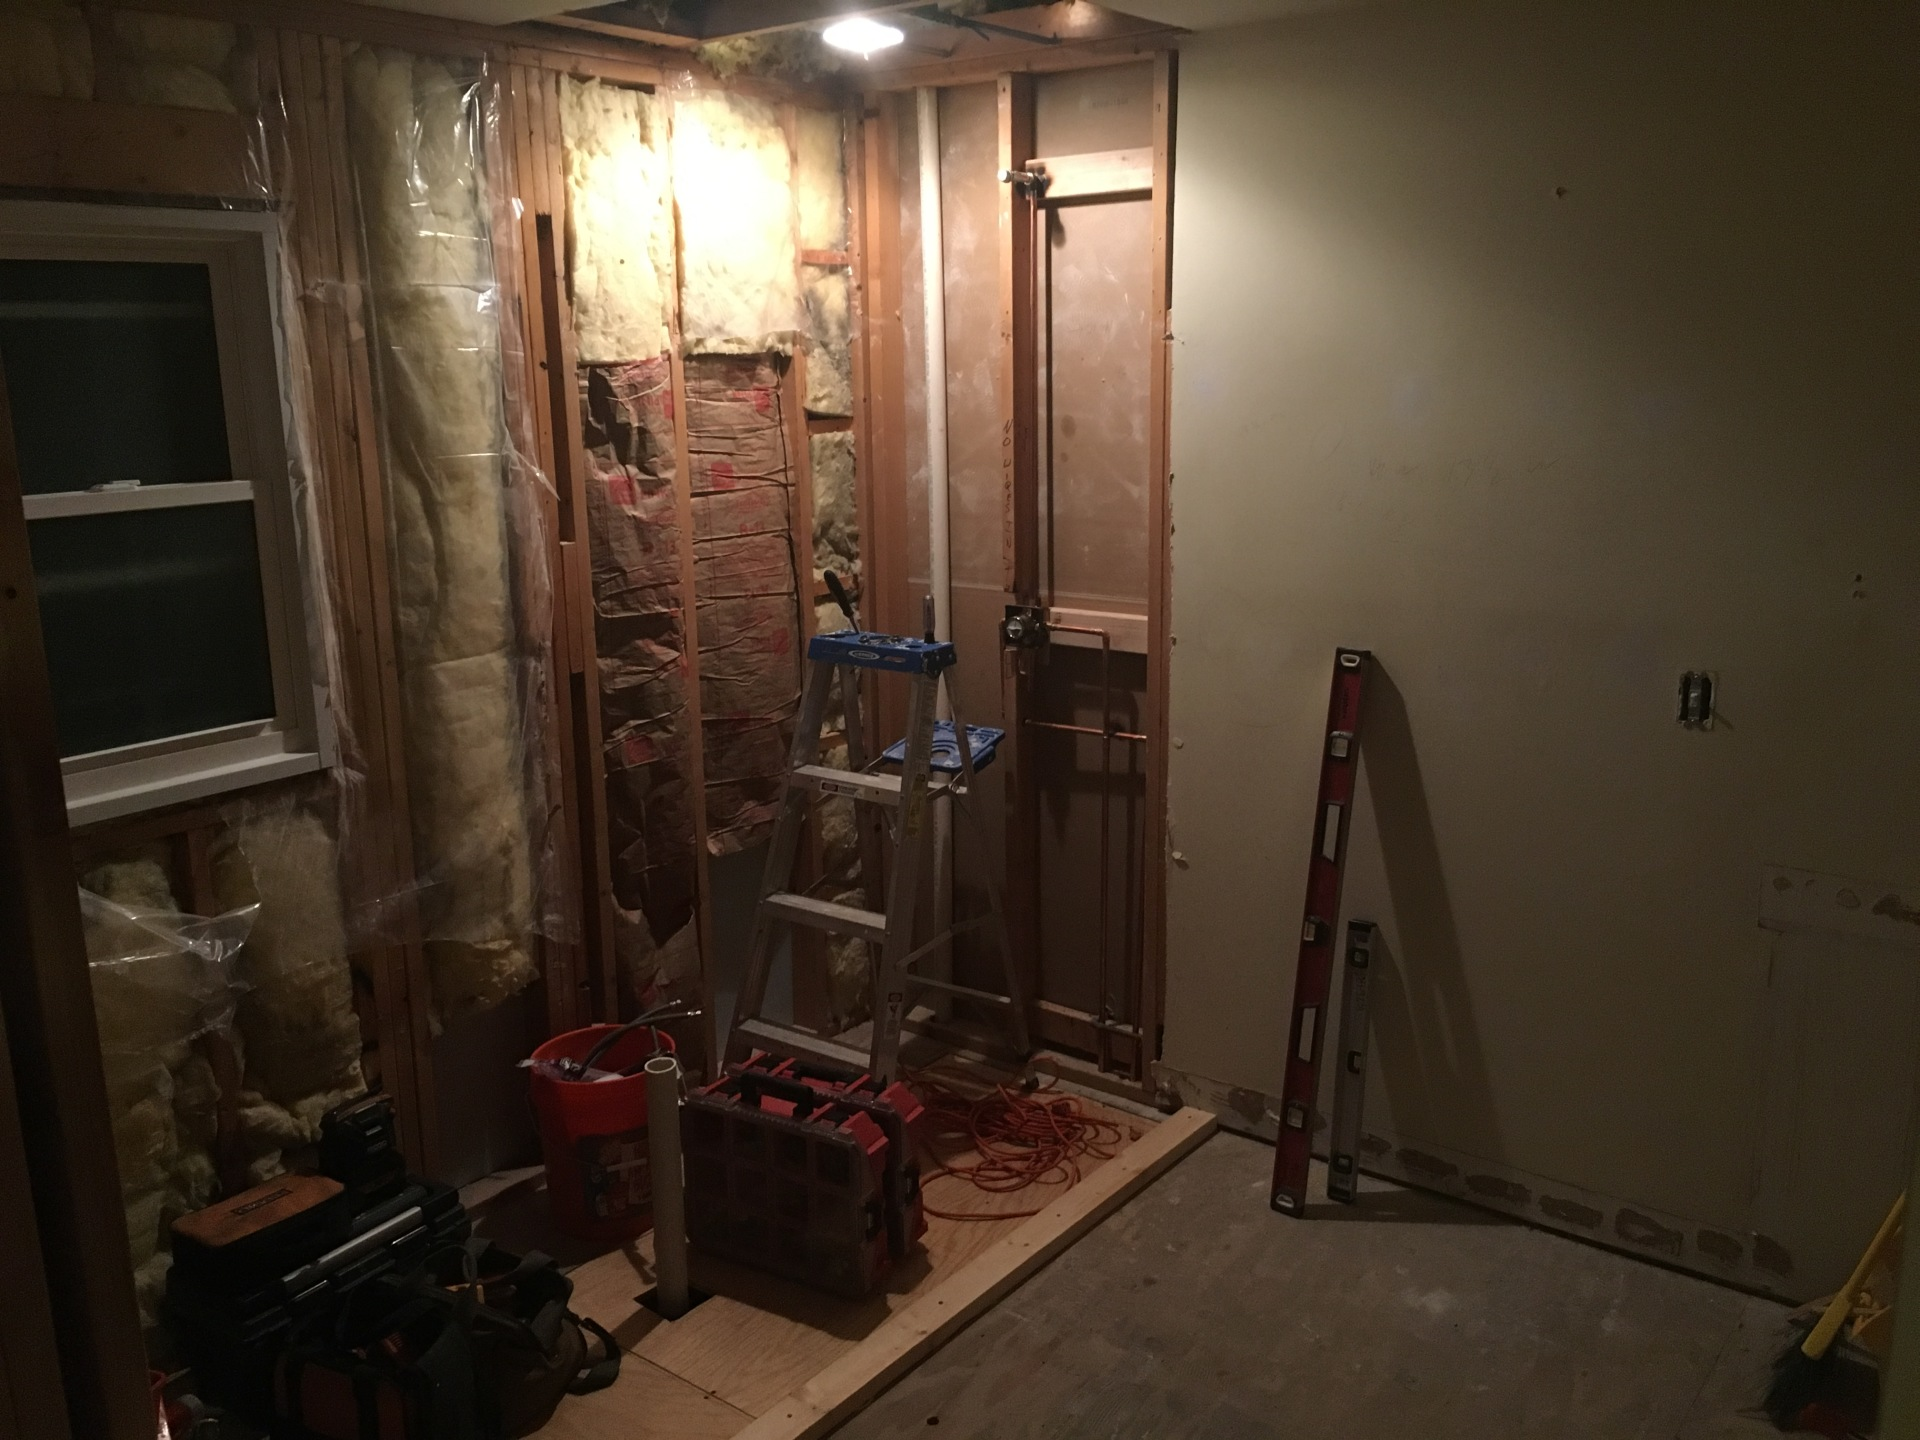 Demo Bathroom in progress